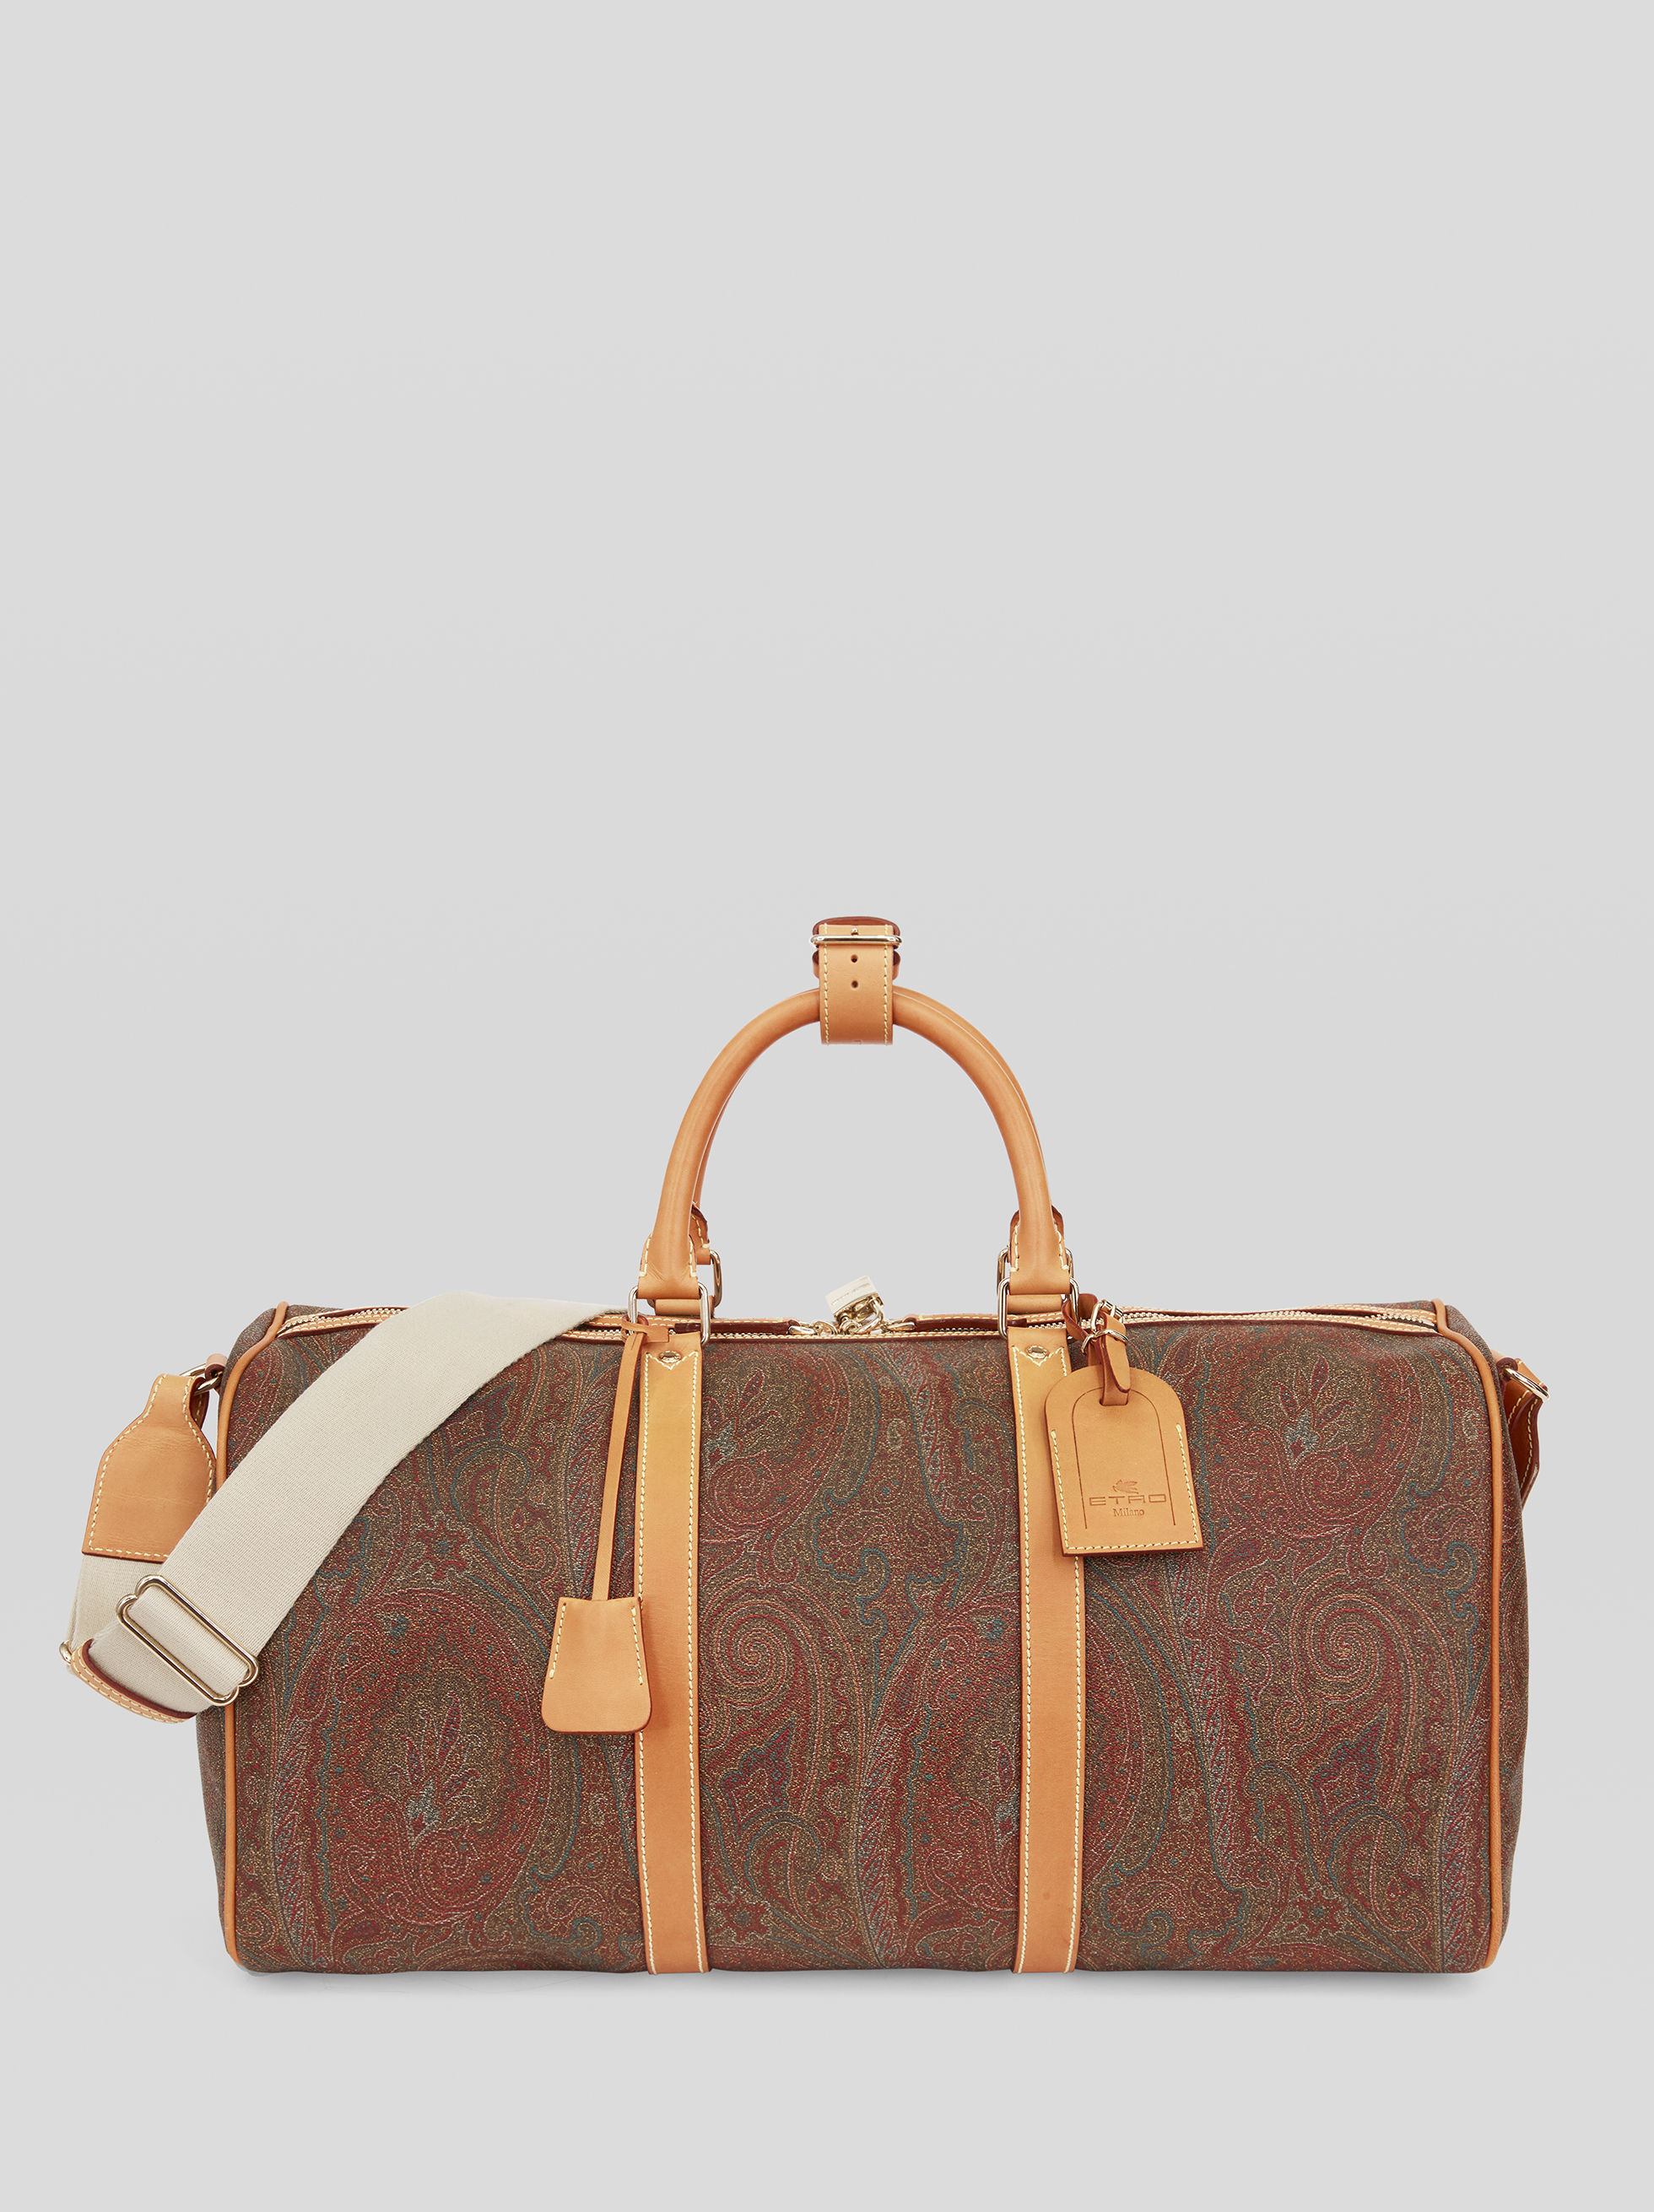 PAISLEY TRAVEL BAG WITH CROSSBODY STRAP